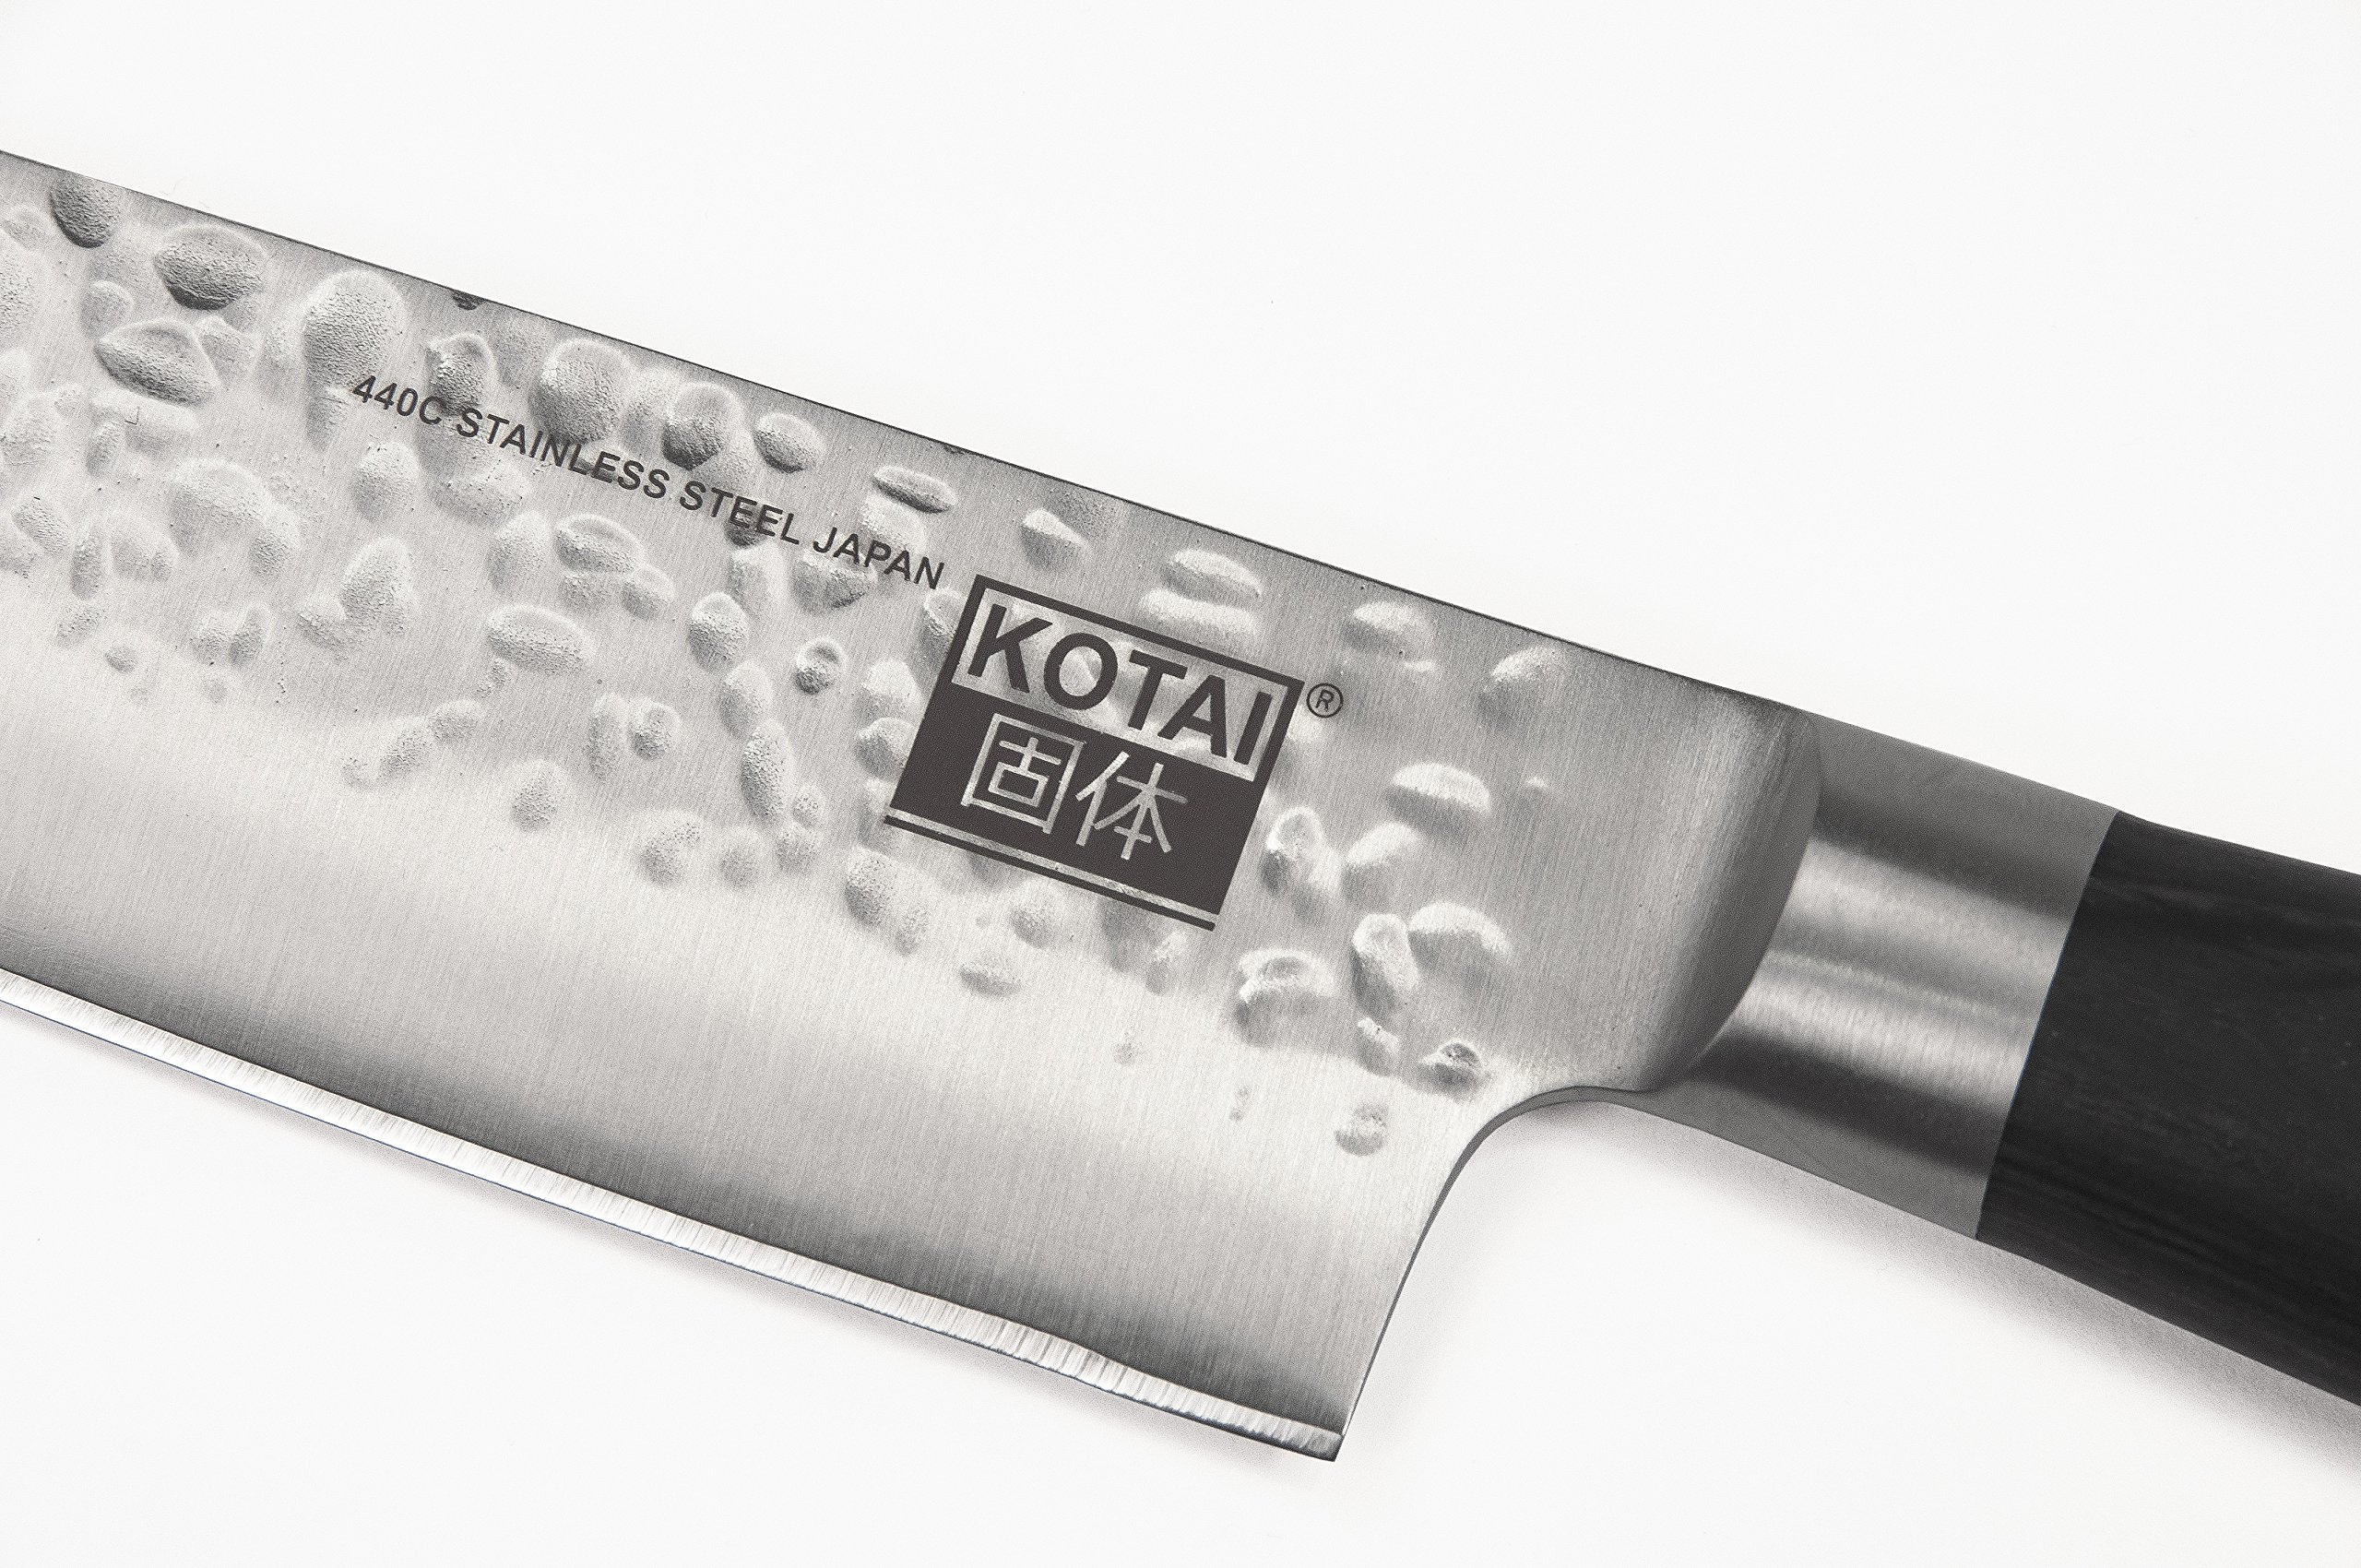 KOTAI Professional Chef Knife Gyuto - Japanese 440C High-Carbon Stainless Steel - Multipurpose Top Kitchen Knife for Home and Restaurant - Full Tang 8-inch Blade (20cm blade / 200mm blade)